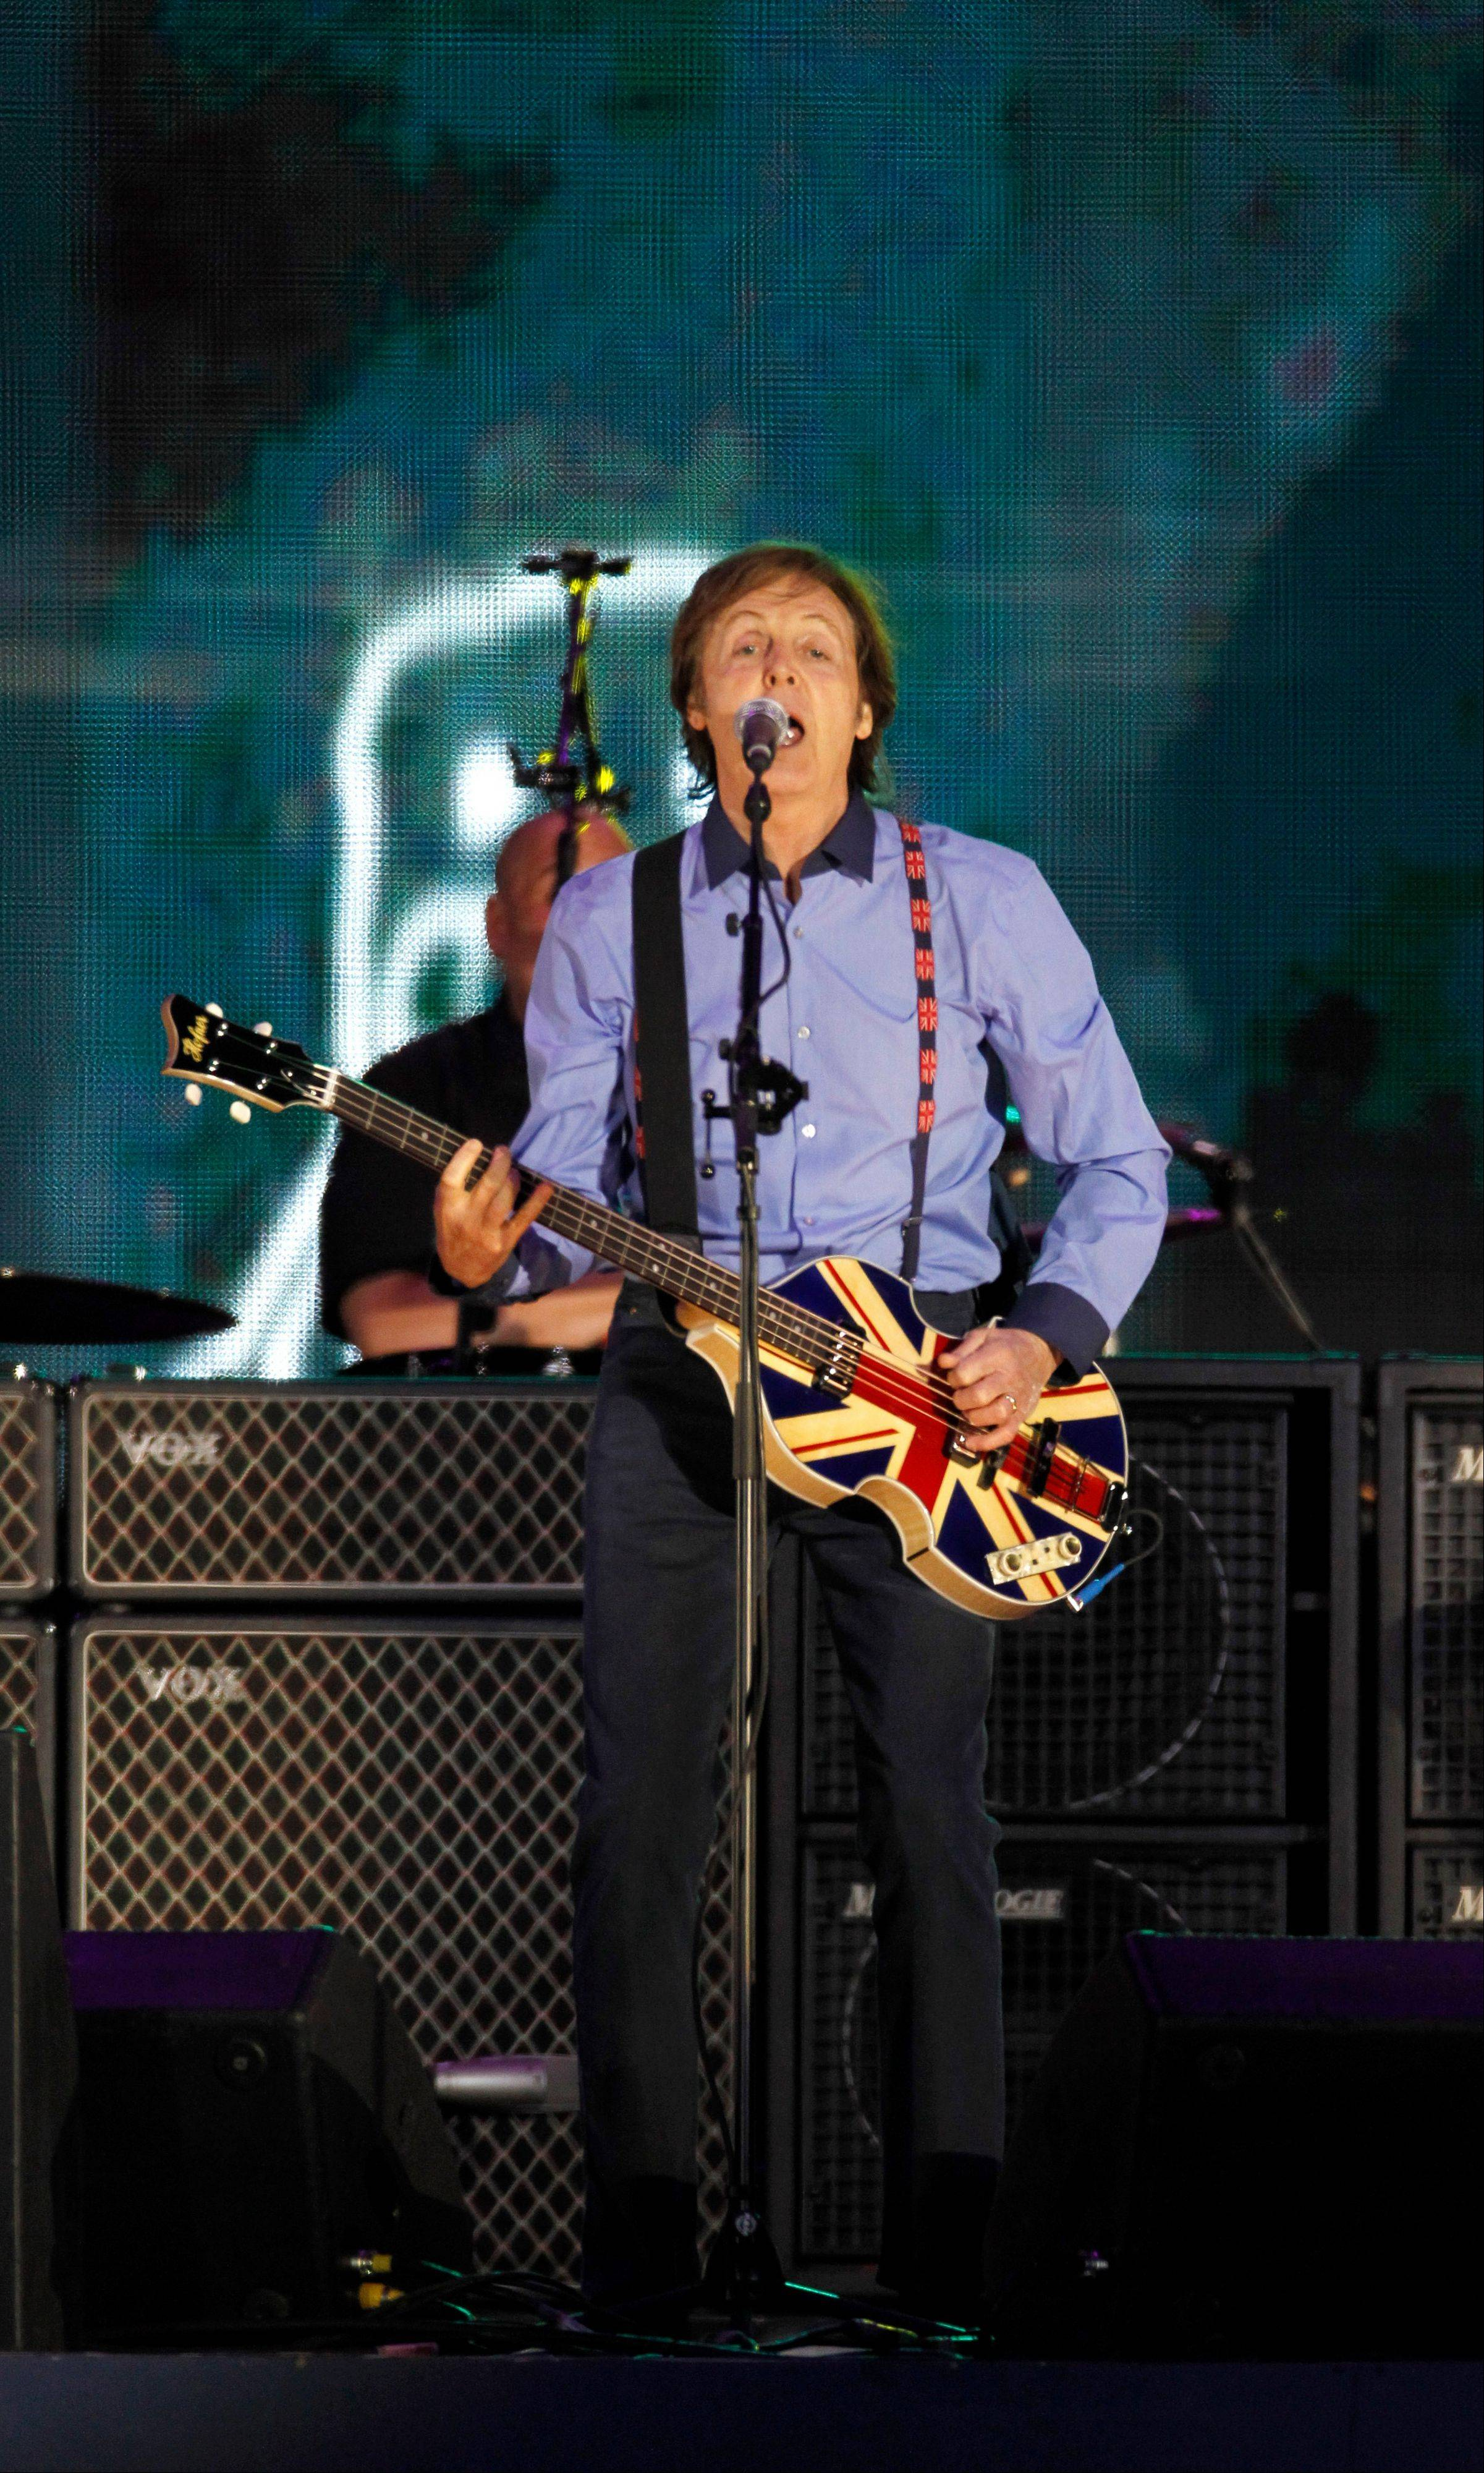 Sir Paul McCartney performs at the Queen's Jubilee Concert in front of Buckingham Palace, London, Monday, June 4, 2012. The concert is a part of four days of celebrations to mark the 60-year reign of Britain's Queen Elizabeth II.